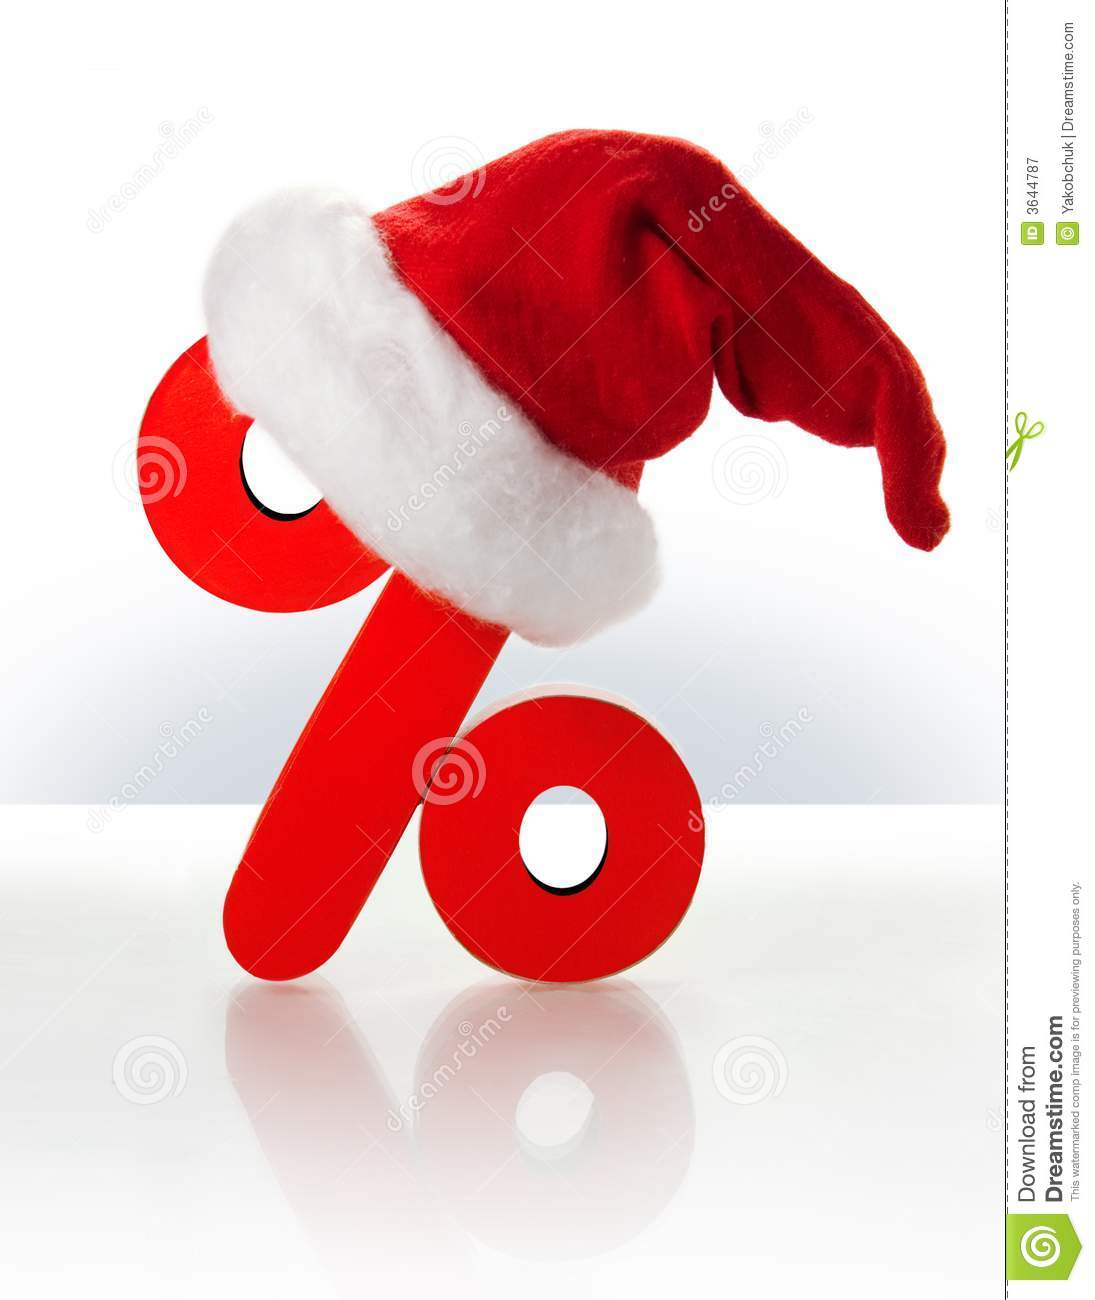 Christmas discount stock image. Image of humor, mathematical - 3644787